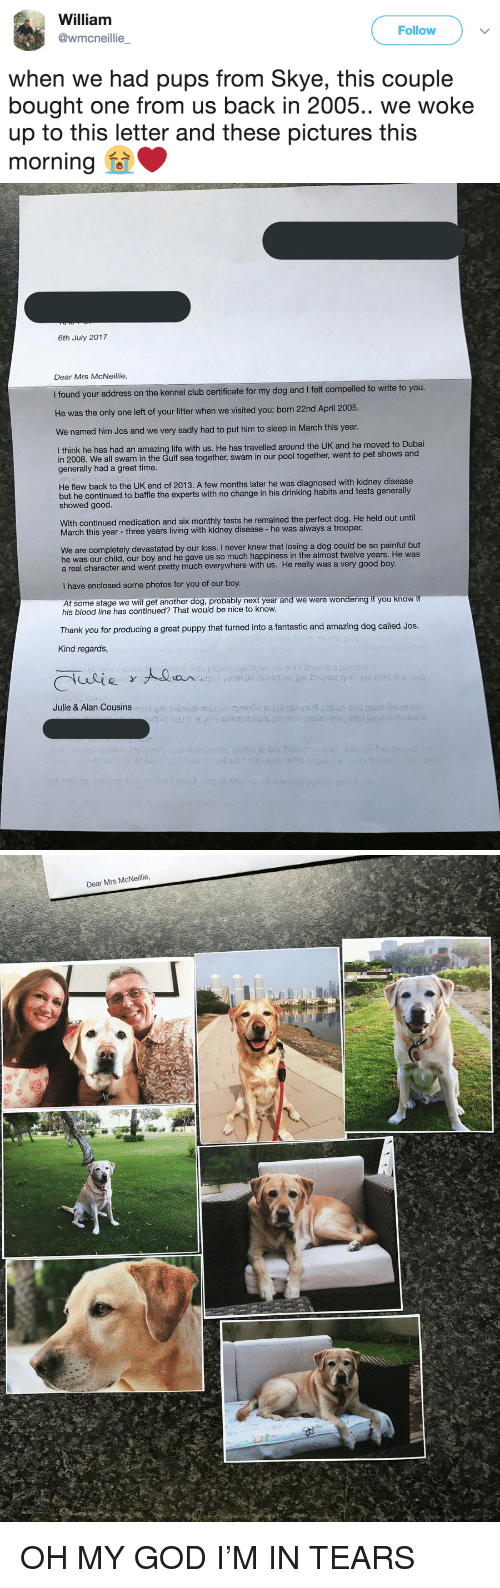 Club, Drinking, and God: William  @wmcneillie  Follow  when we had pups from Skye, this couple  bought one from us back in 2005.. we woke  up to this letter and these pictures this  morning釡   6th July 2017  Dear Mrs McNeillie  I found your address on the kennel club certificate for my dog and I felt compelled to write to you  He was the only one left of your litter when we visite  d you; born 22nd April 2005  We named him Jos and we very sadly had to put him to sleep in March this year  I think he has had an amazing life with us. He has travelled around the UK and he moved to Dubai  in 2008. We all swam in the Gulf sea together, swam in our poo  generally had a great time.  I together, went to pet shows and  He flew back to the UK end of 2013. A few months later he was diagnosed with kidney disease  but he continued to baffle the experts with no change in his drinking habits and tests generally  showed good.  With continued medication and six monthly tests he remained the perfect dog. He held out until  March this year - three years living with kidney disease- he was always a trooper.  We are completely devastated by our loss. I never knew that losing a dog could be so painful but  he was our child, our boy and he gave us so much happiness in the almost twelve years. He was  a real character and went pretty much everywhere with us. He really was a very good boy.  I have enclosed some photos for you of our boy  At some stage we will get another dog, probably next year and we were wondering if you know if  his blood line has continued? That would be nice to know.  Thank you for producing a great puppy that turned into a fantastic and amazing dog called Jos.  Kind regards,  Julie & Alan Cousins   Dear Mrs McNeillie <p>OH MY GOD I'M IN TEARS</p>